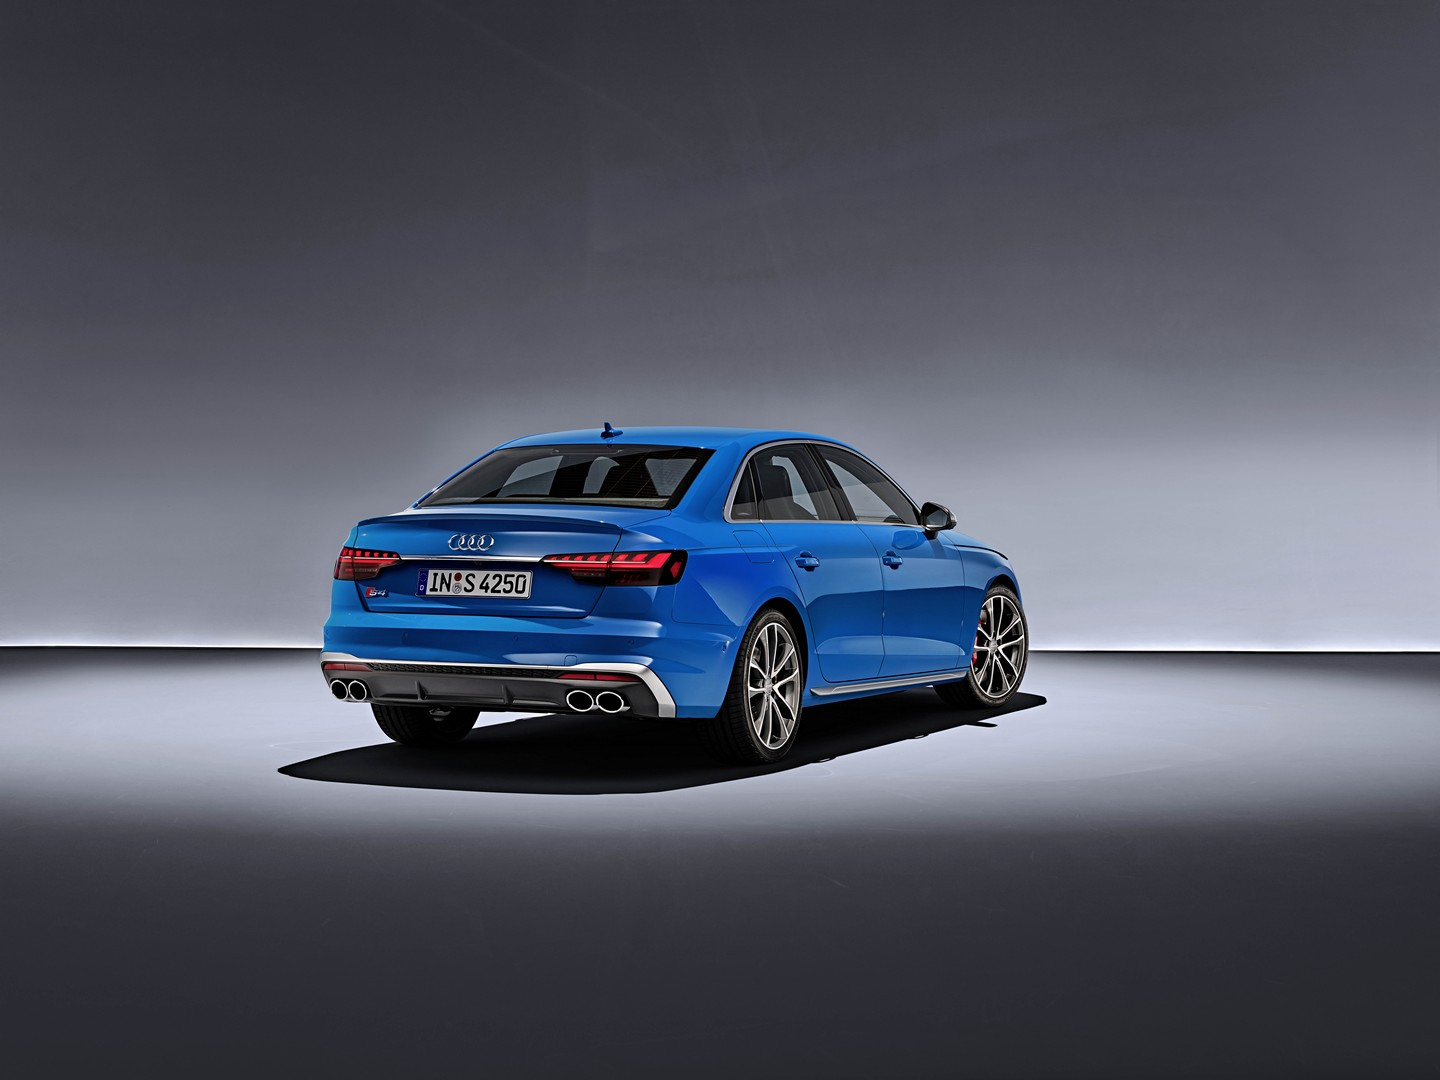 Audi S And S Avant Debut With New Look Tdi Engines In Europe